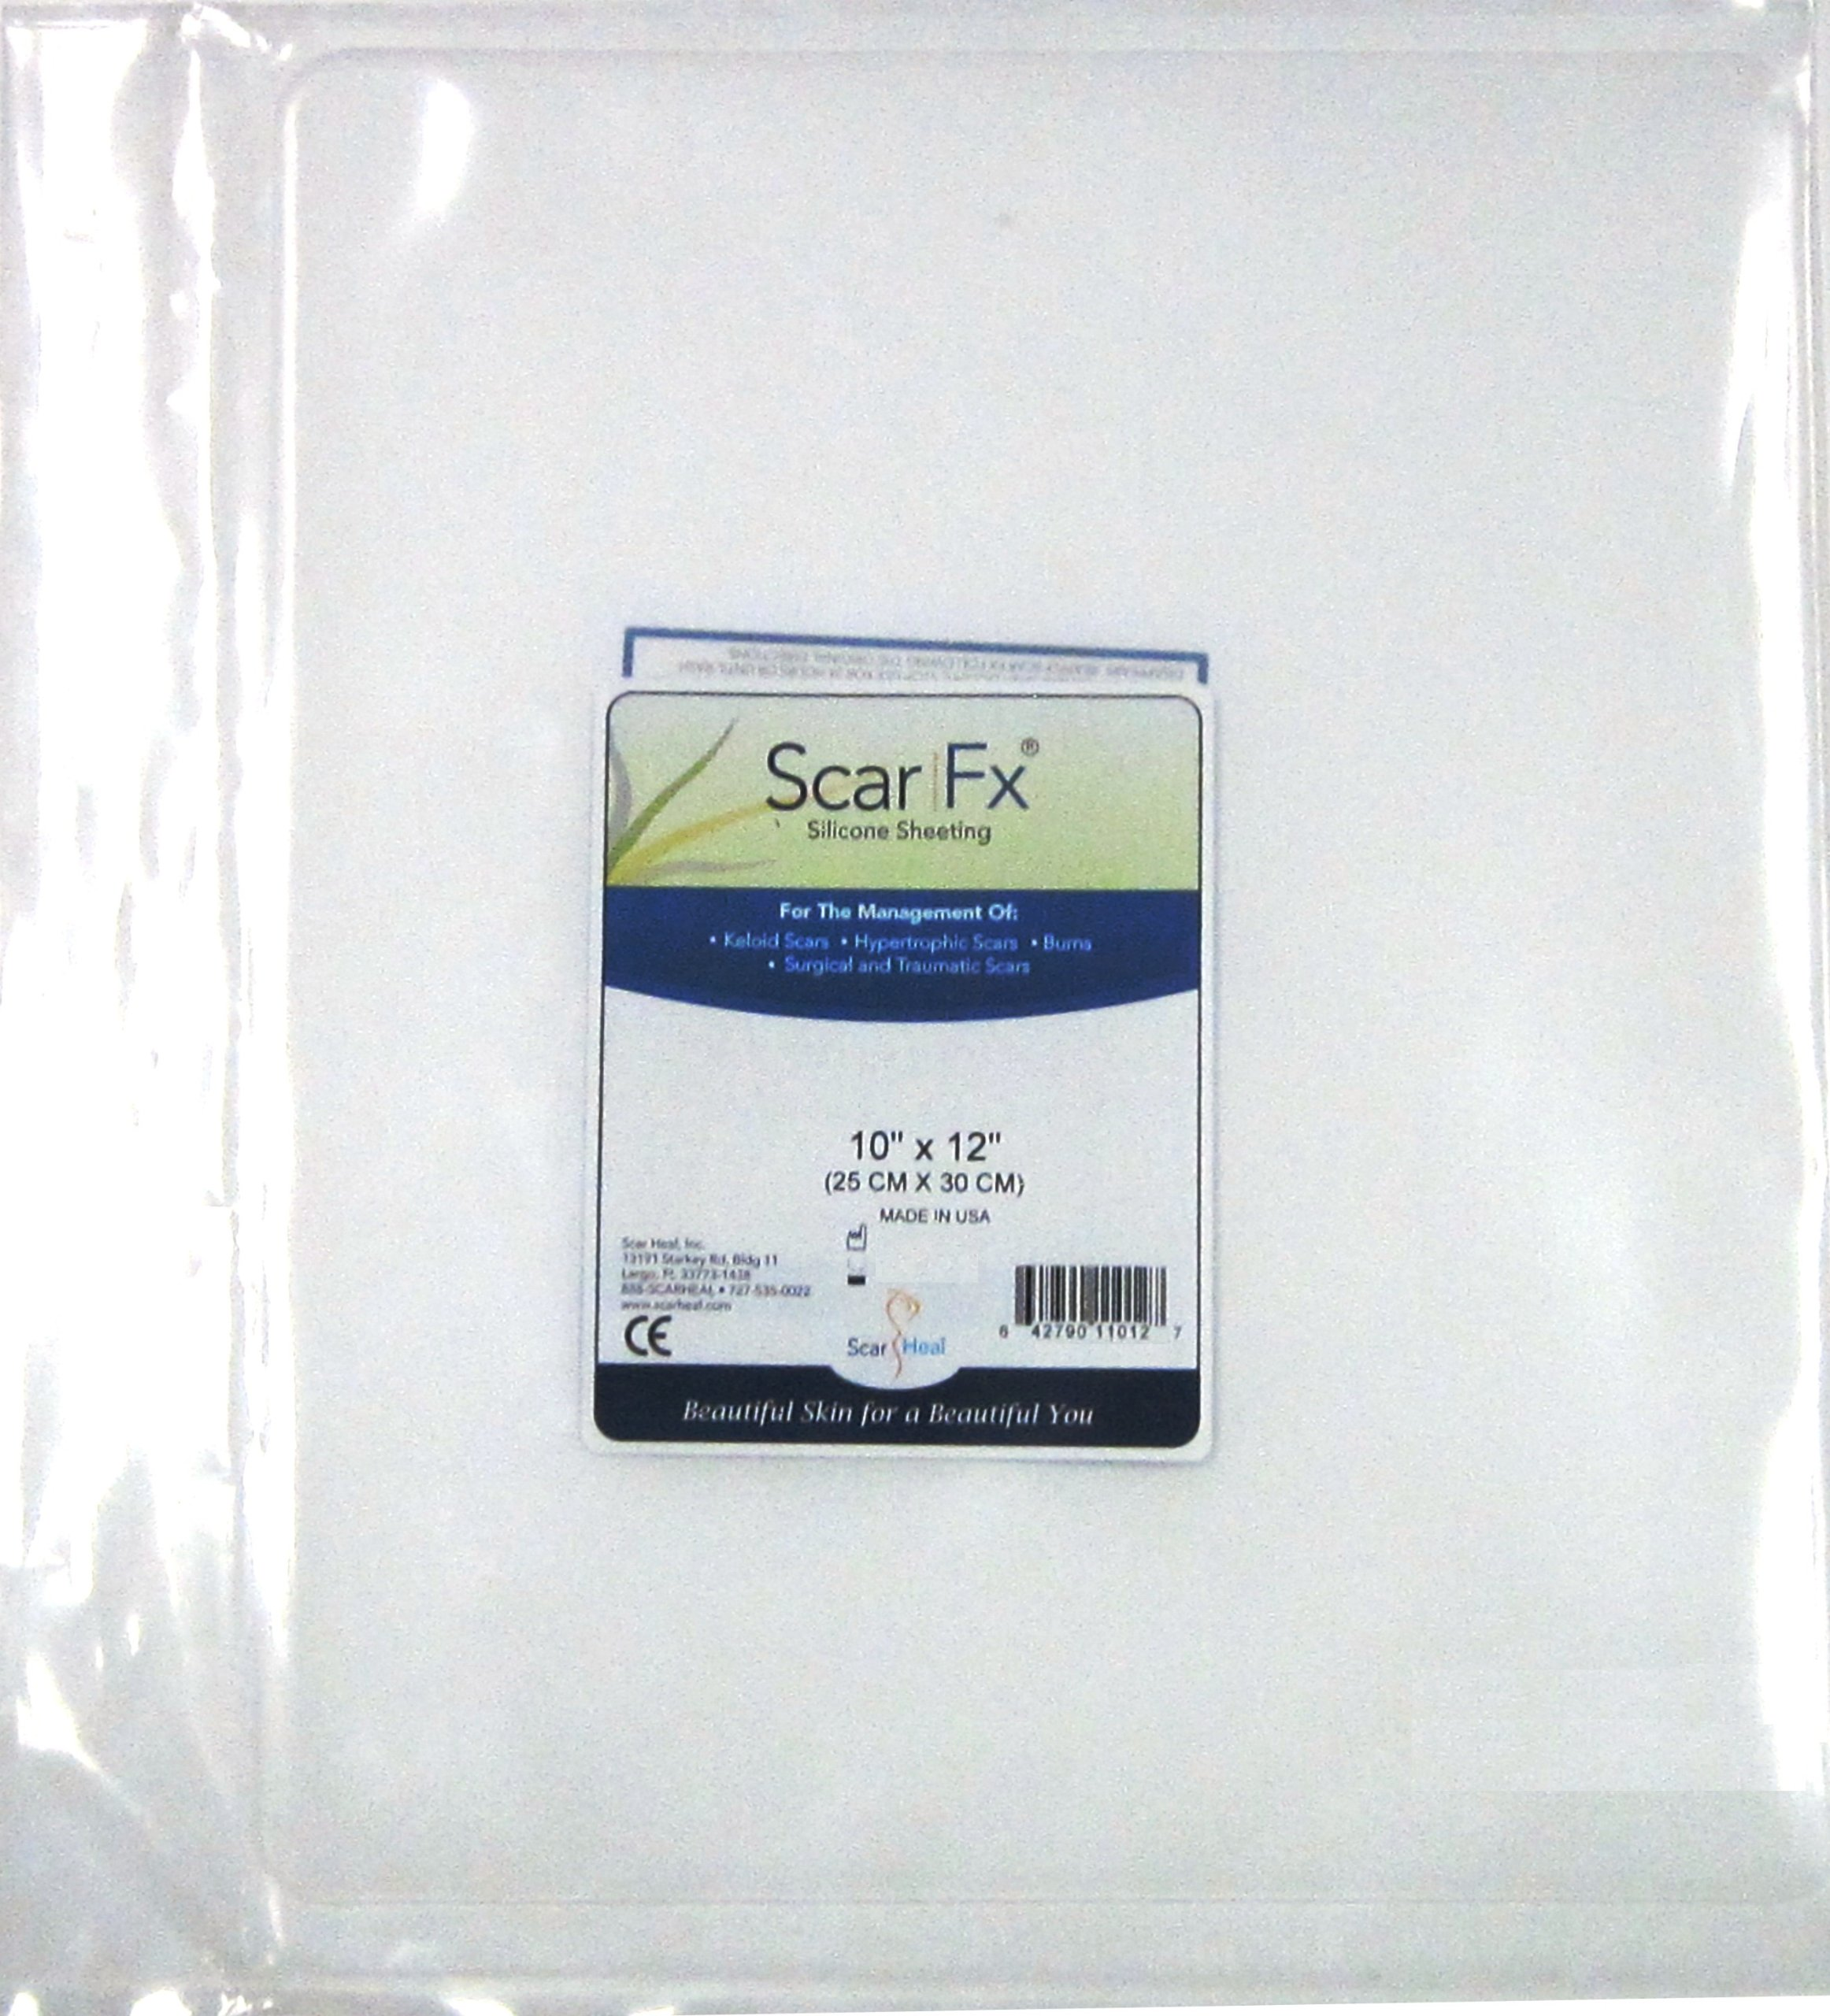 Scar Fx Silicone Scar Therapy, Size Of Patch 10'' X 12'', 1 Patch by Rejuvaskin